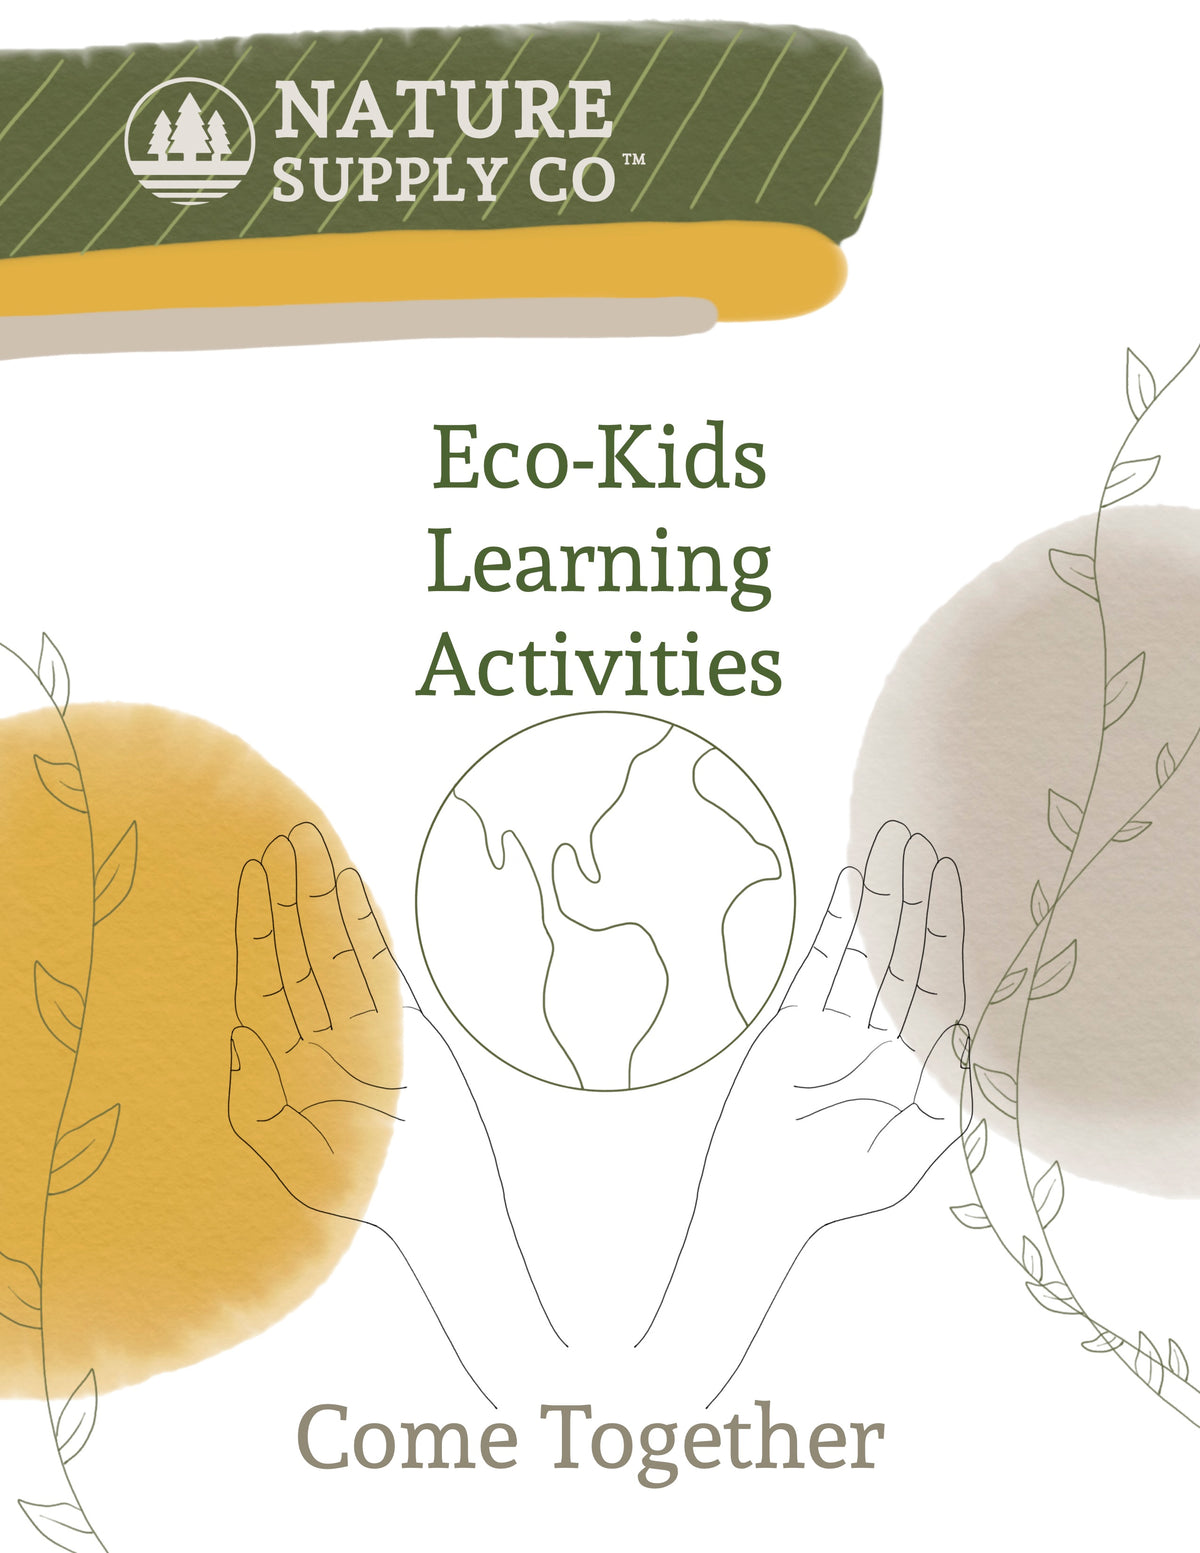 Eco-Kids Learning: Come Together